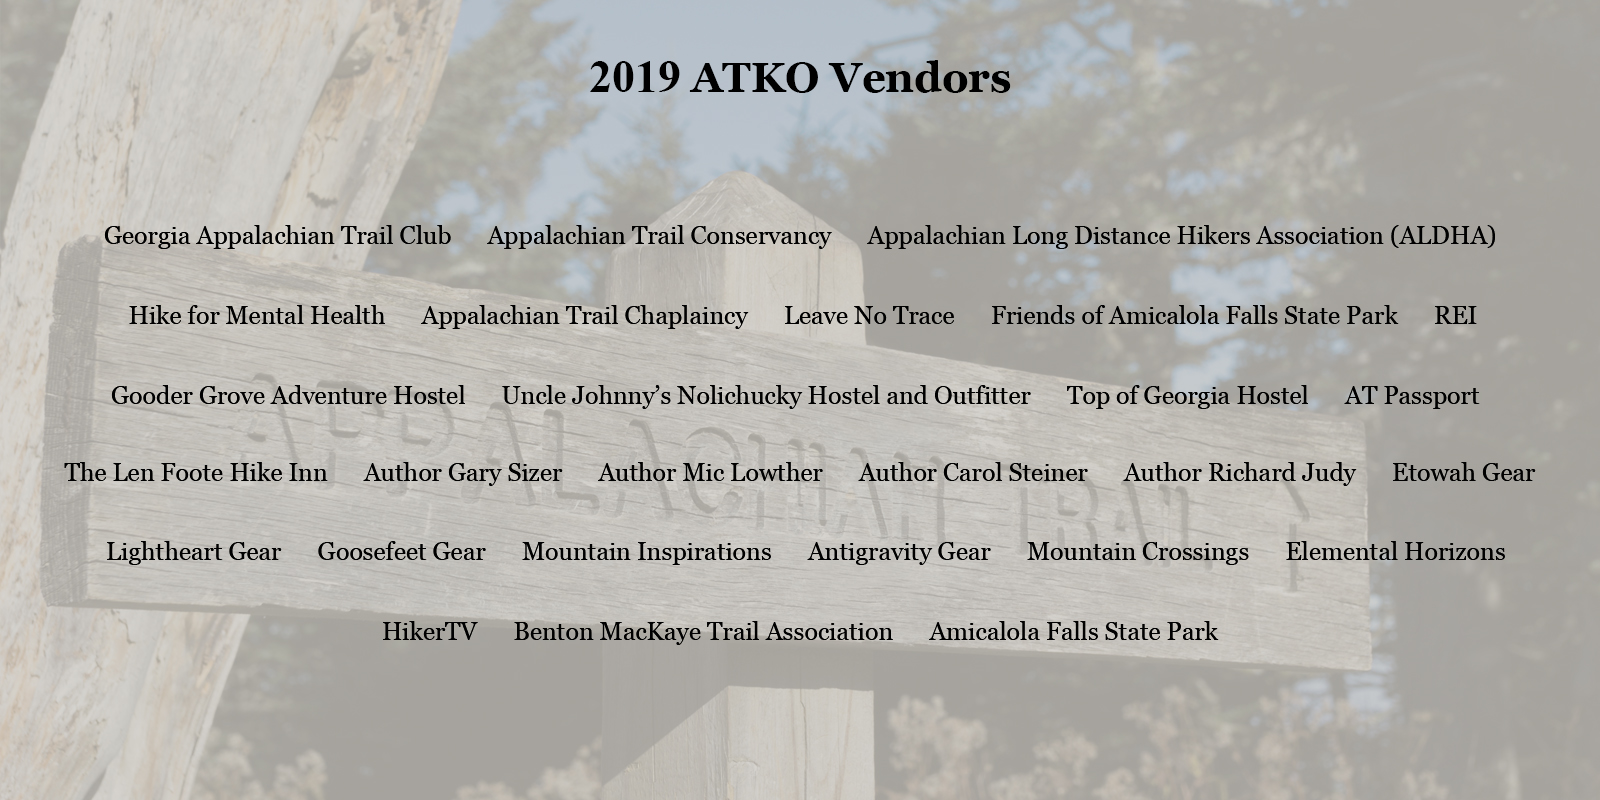 2019 Appalachian Trail Kick Off Vendor List